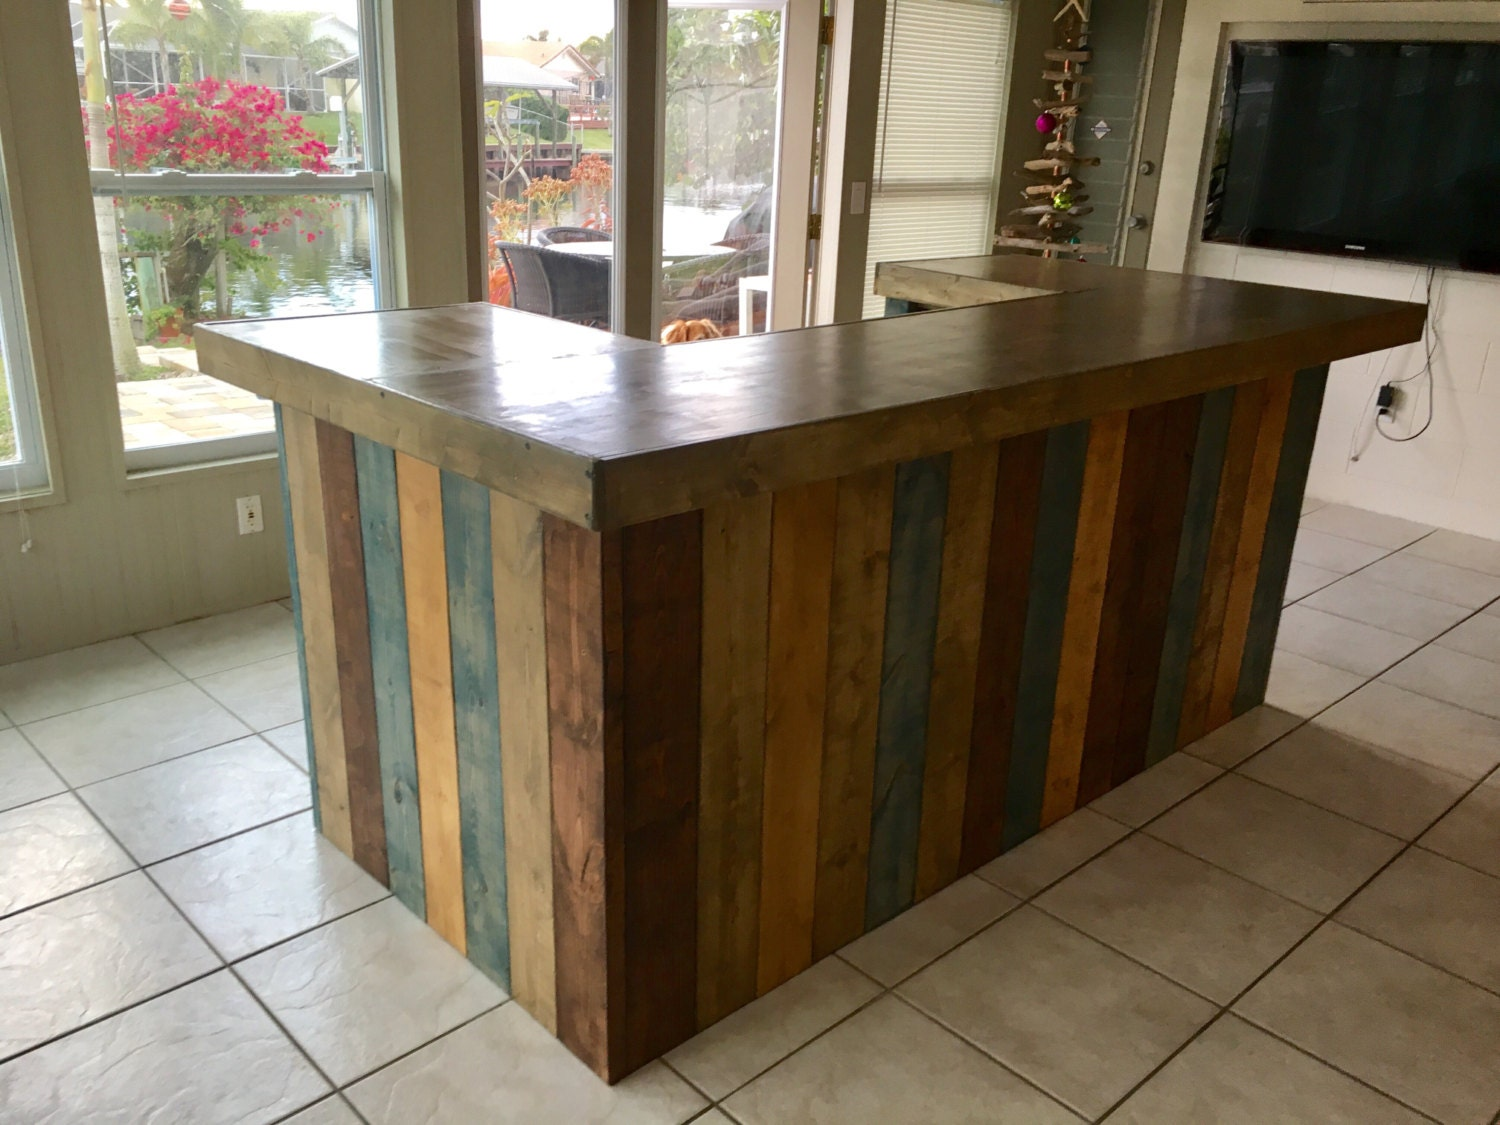 The Rustic Blues Rustic Barn Wood Style Bar Sales